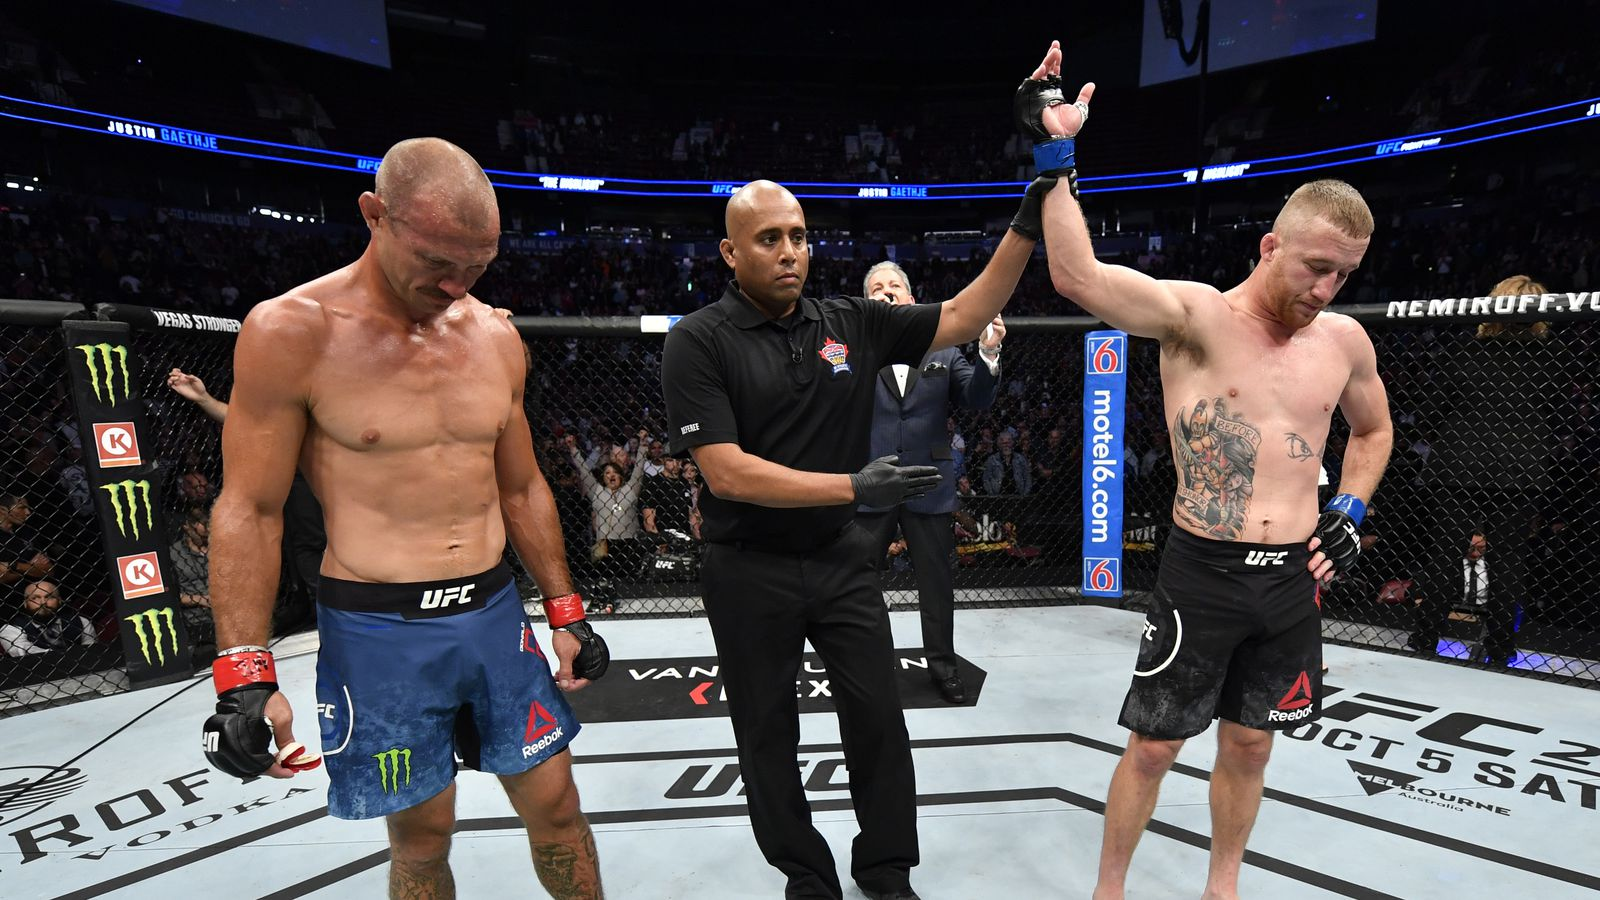 UFC Fight Night 158 results: Biggest winners, loser for 'Cowboy vs Gaethje' last night in Vancouver